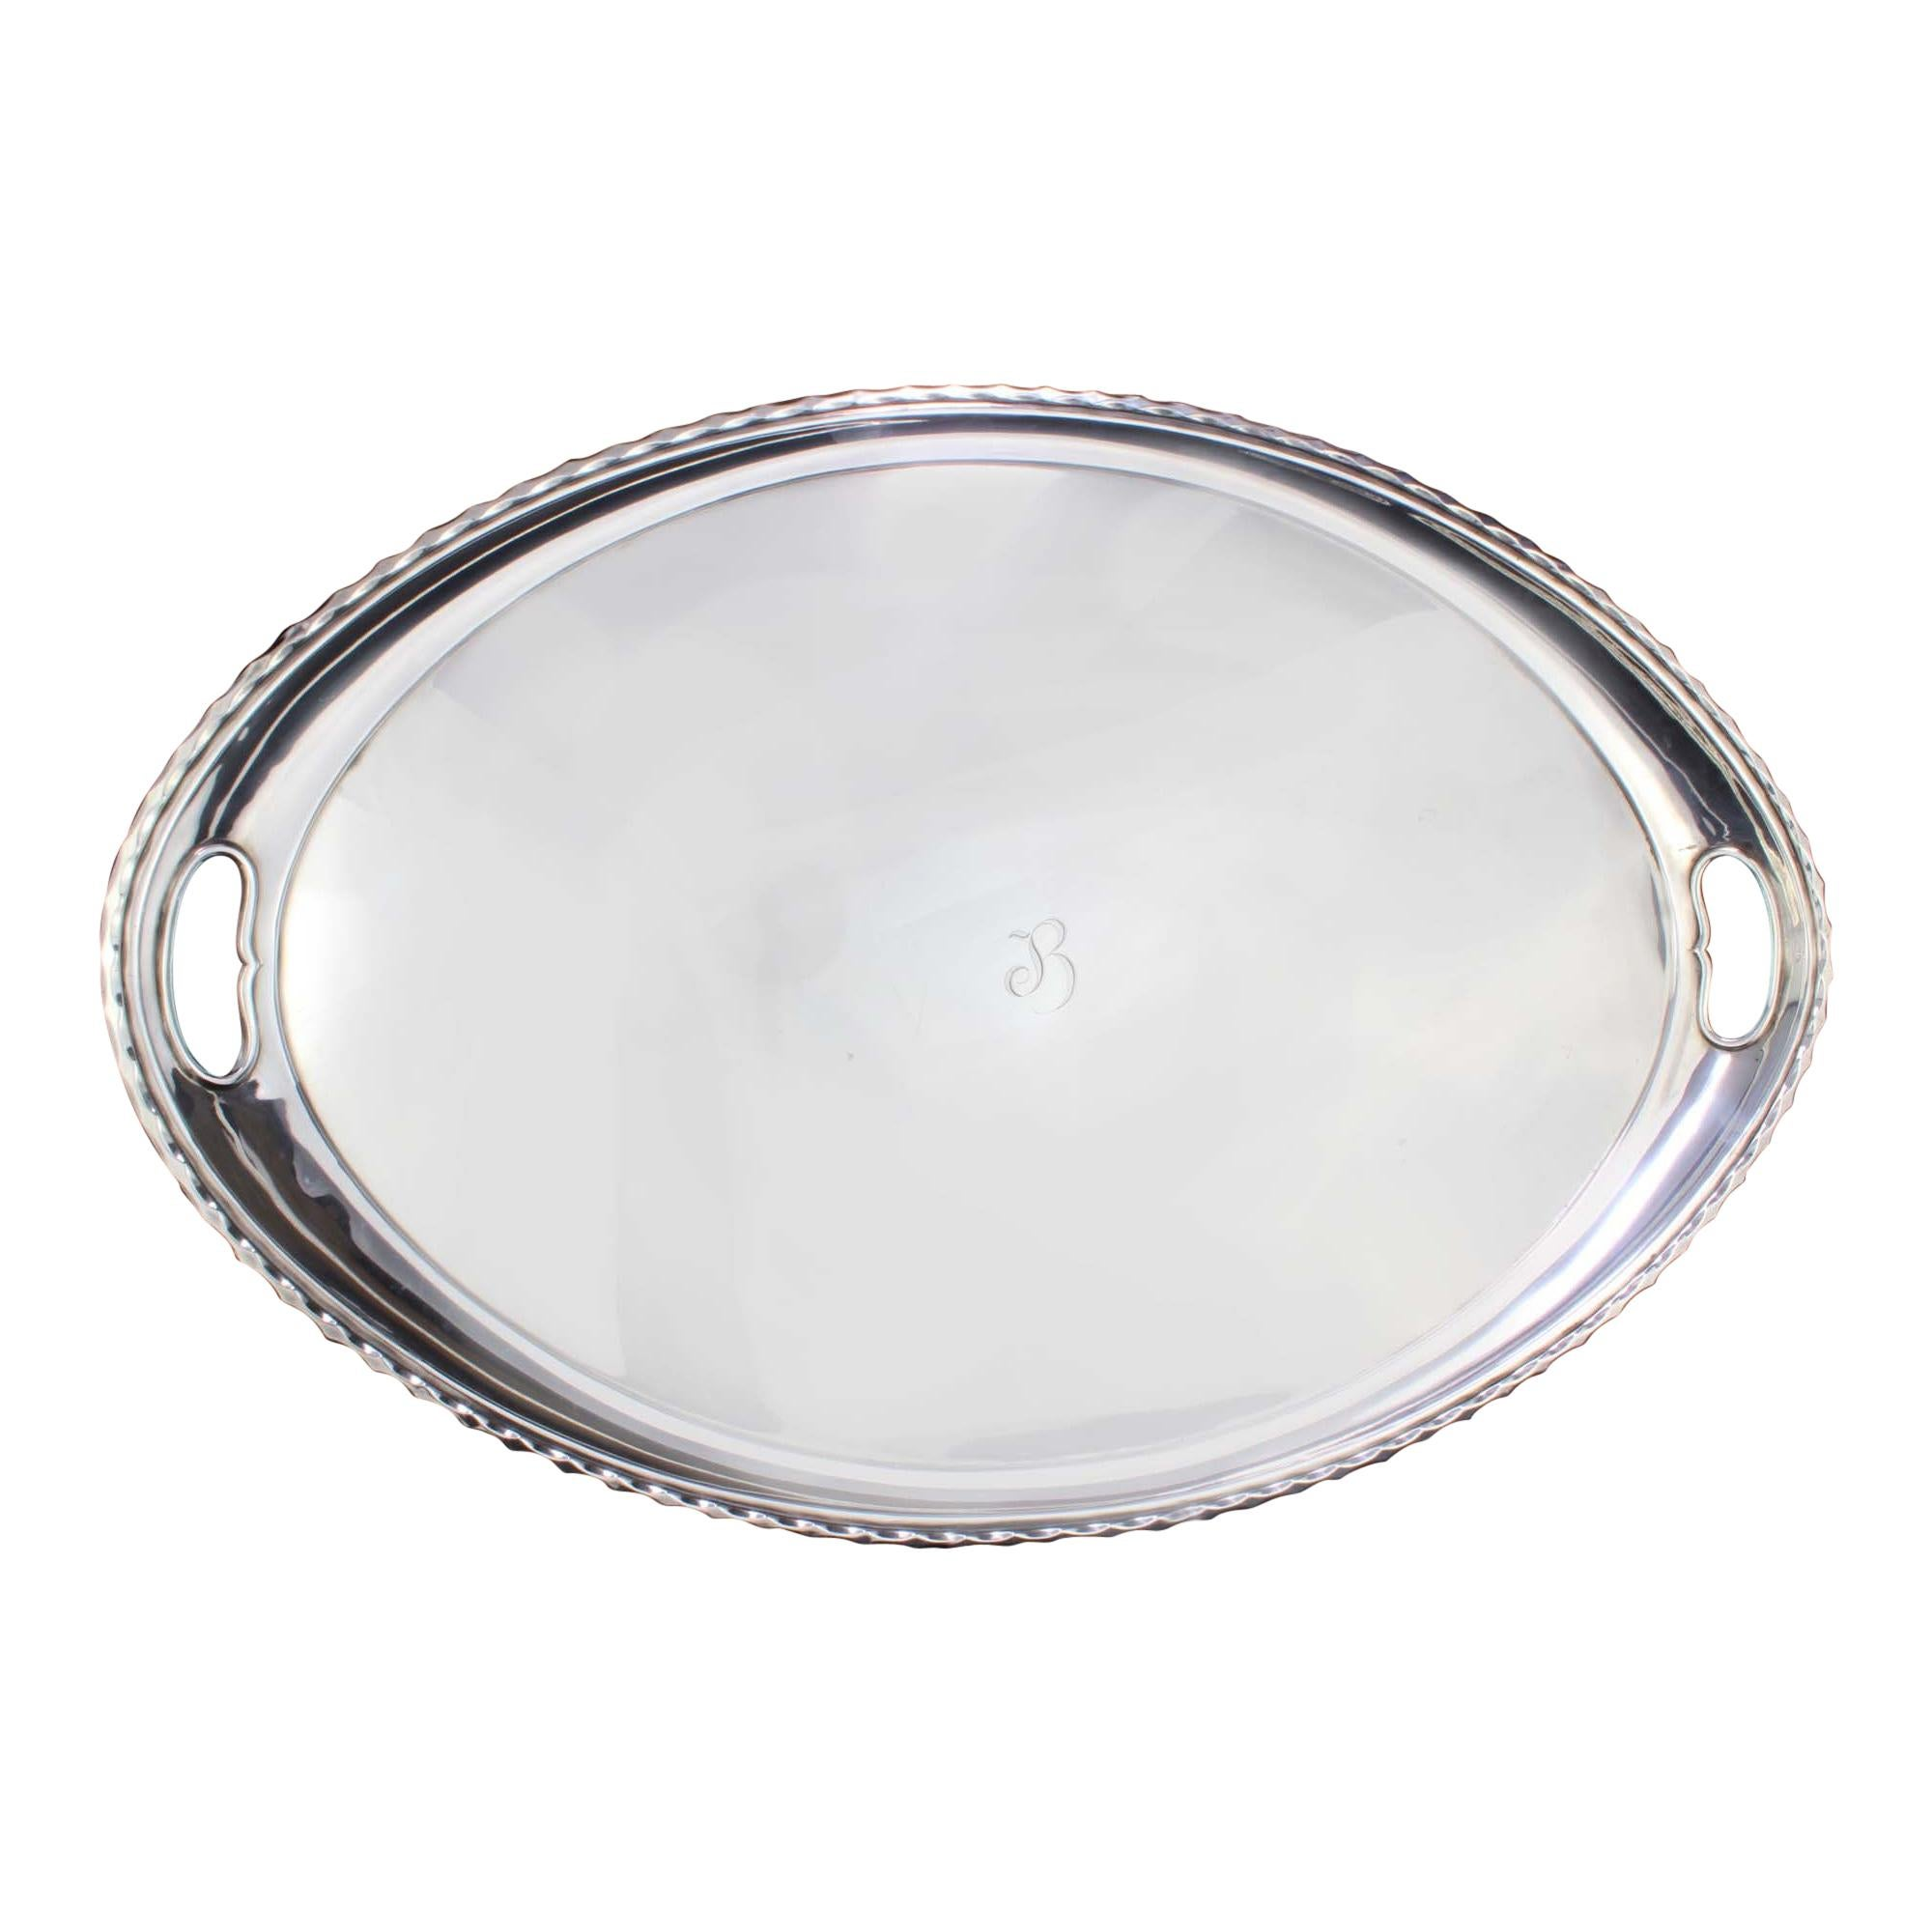 Antique Victorian Silver Plate Large Oval Serving Tray with Initial Letter B